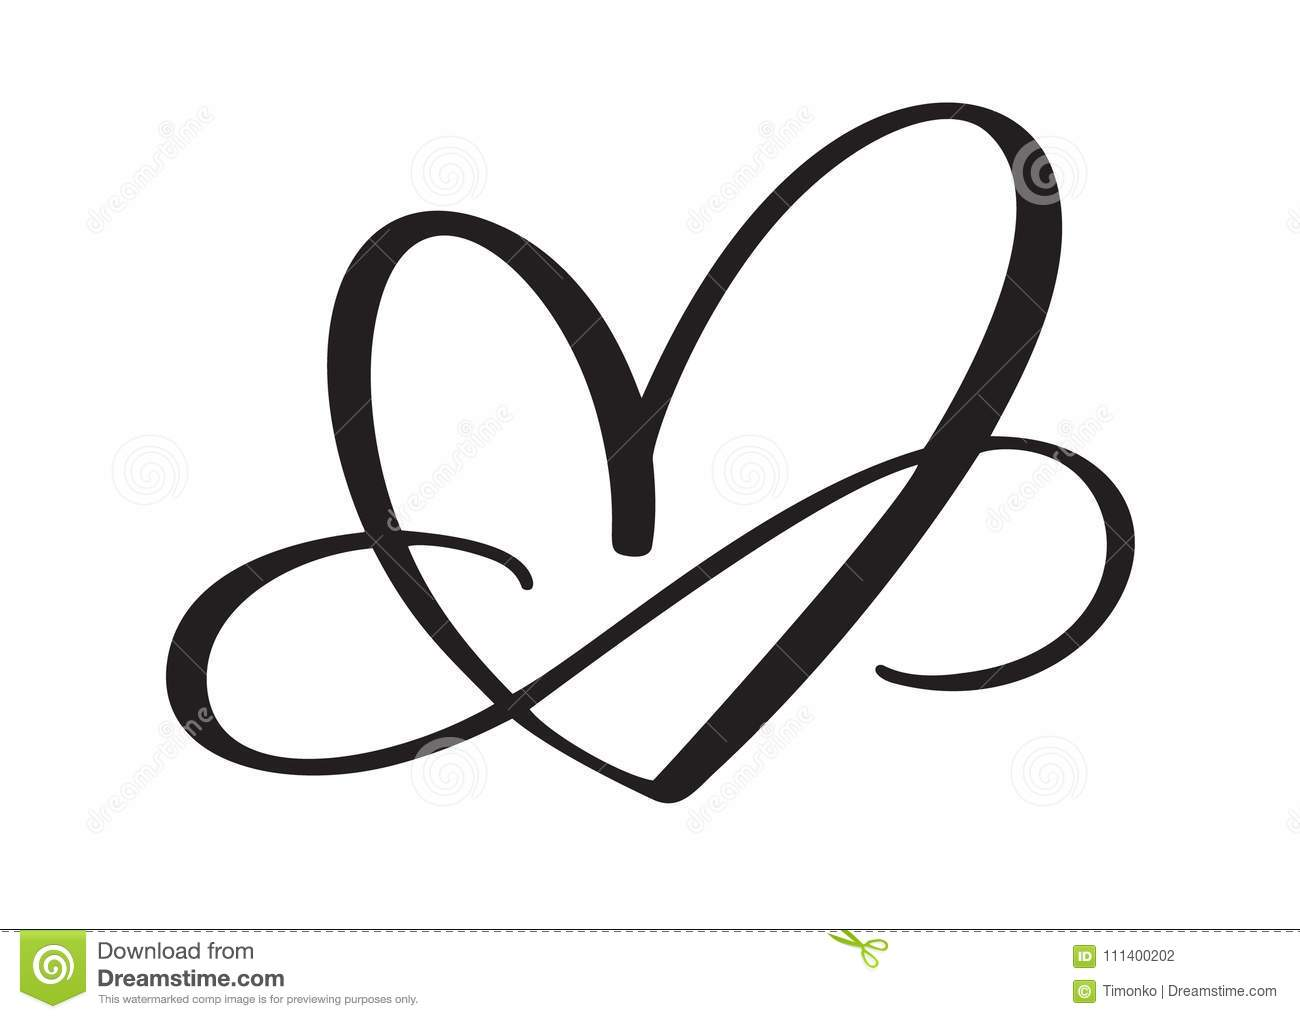 Heart love sign forever infinity romantic symbol linked join heart love sign forever infinity romantic symbol linked join passion and wedding template for t shirt card poster buycottarizona Gallery